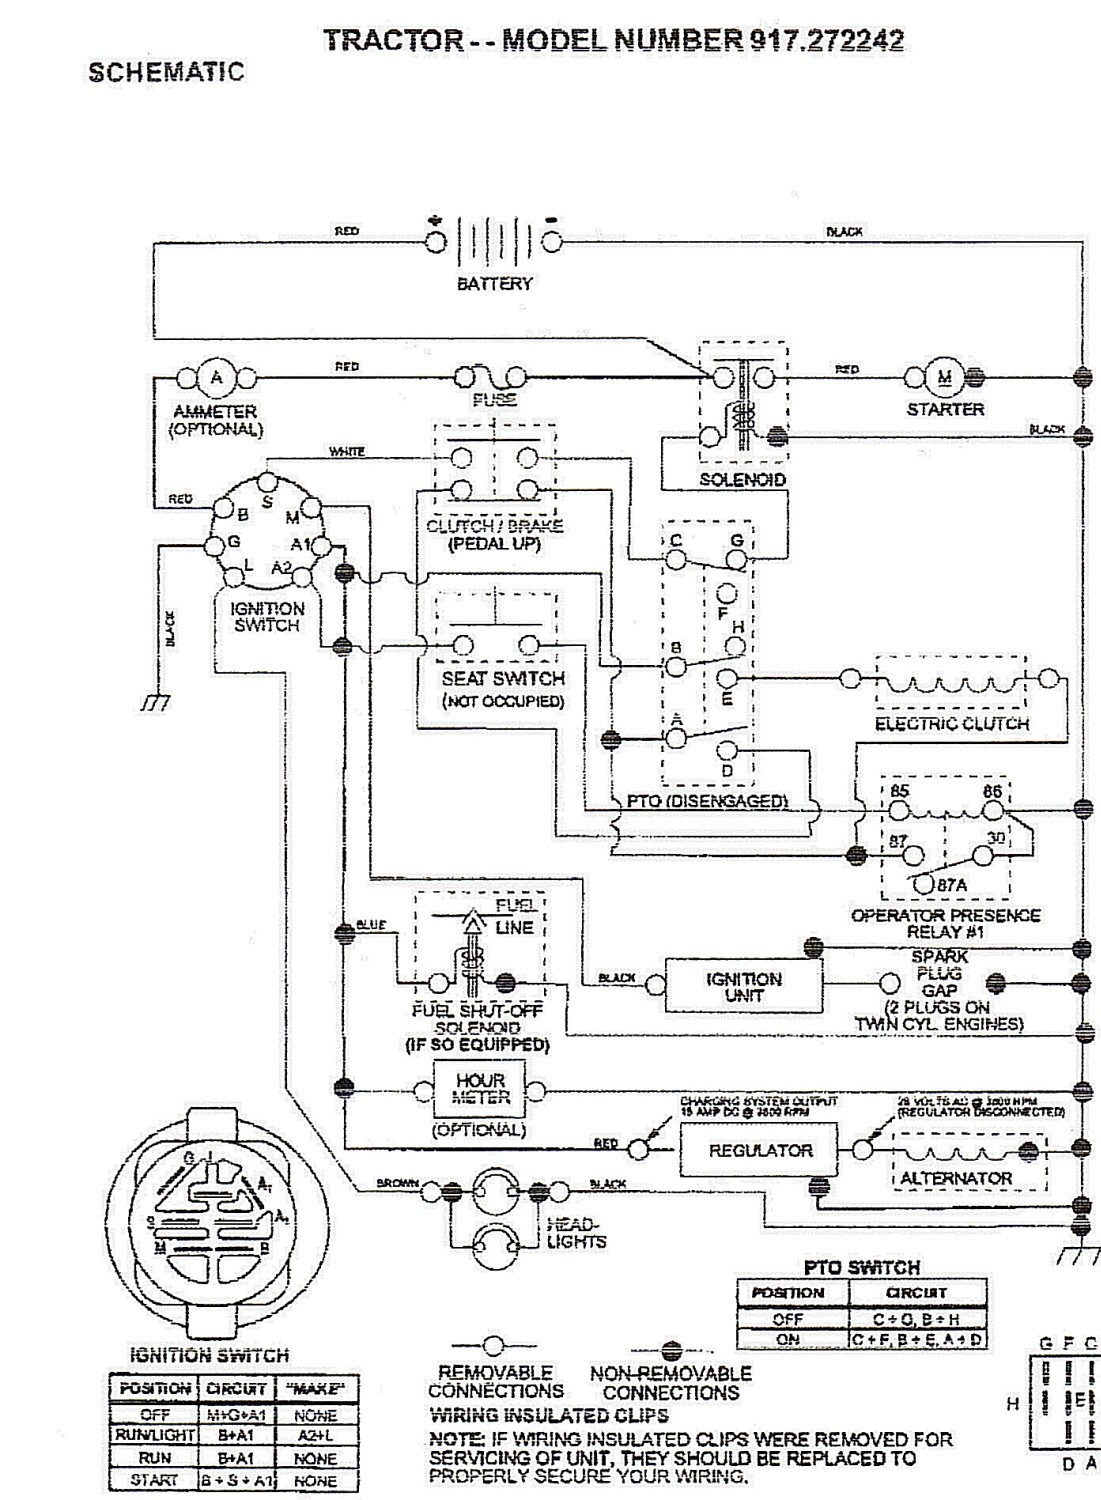 42a707 Wiring Diagram Automotive Yamaha Sr500 Library Rh 69 Codingcommunity De Briggs And Stratton Diagrams